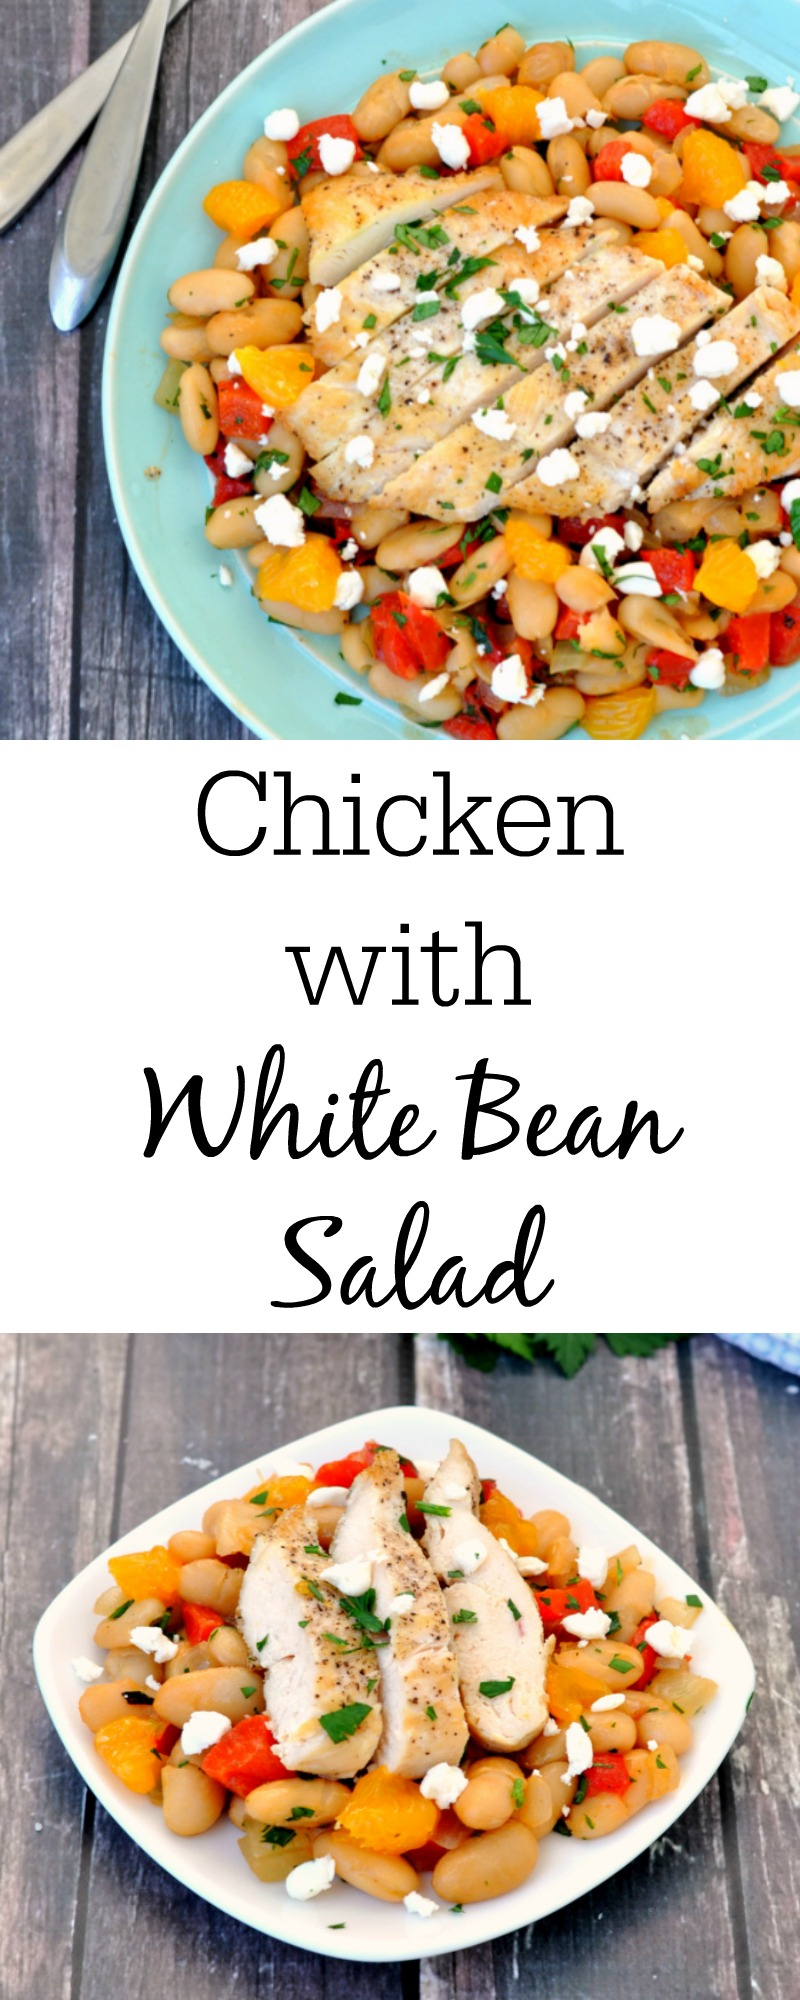 Chicken with White Bean Saute